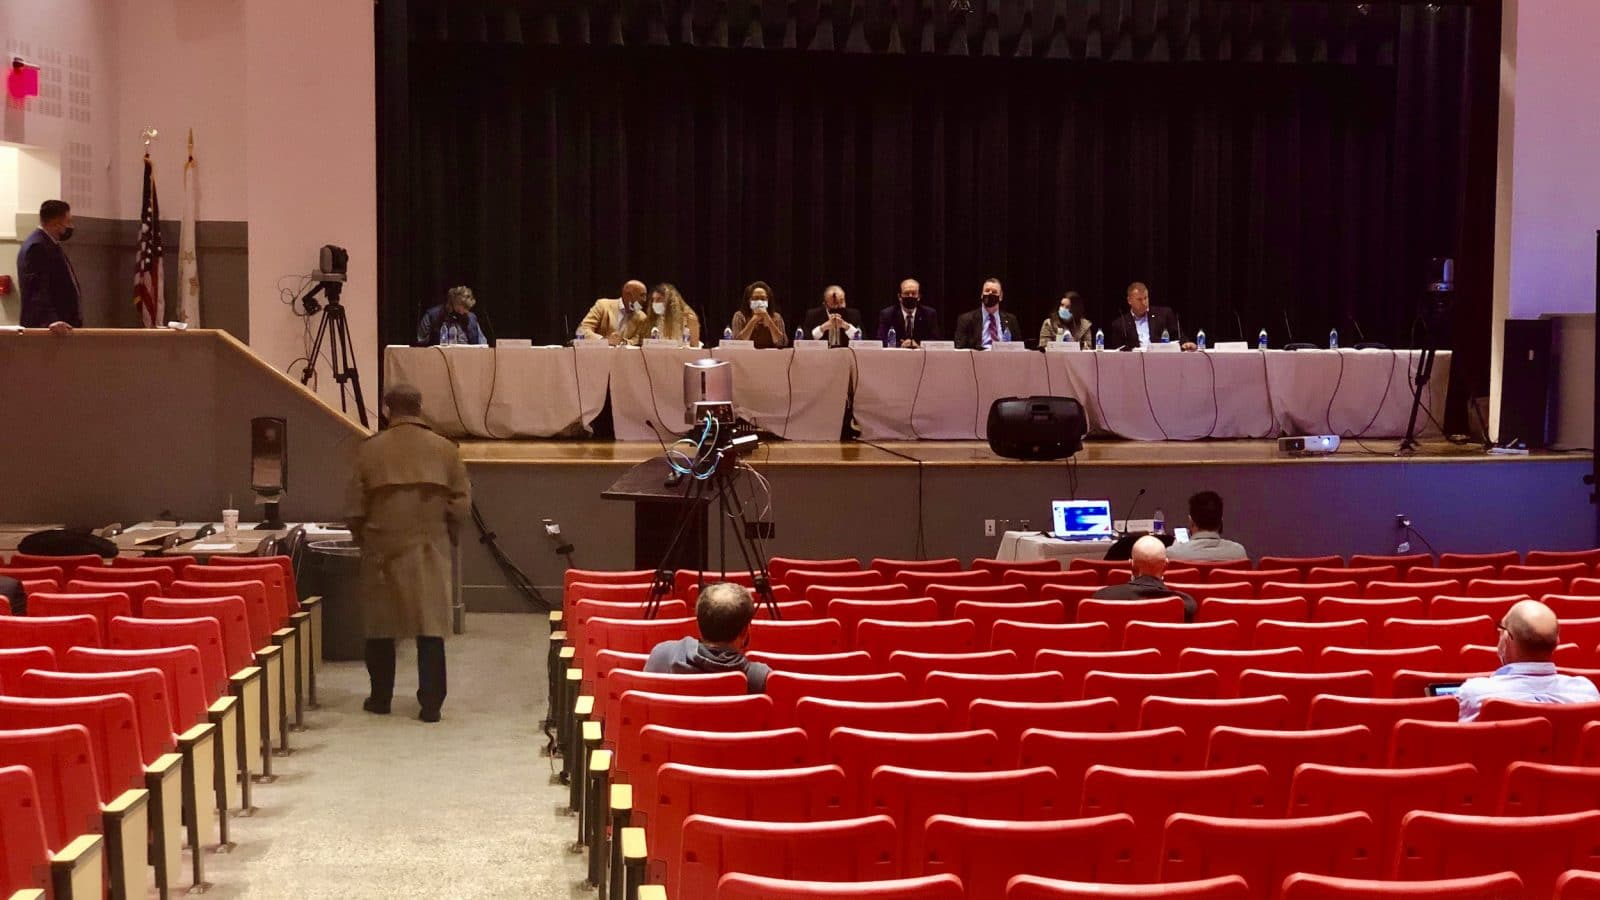 The RI Redistricting Commission hearing that wasn't